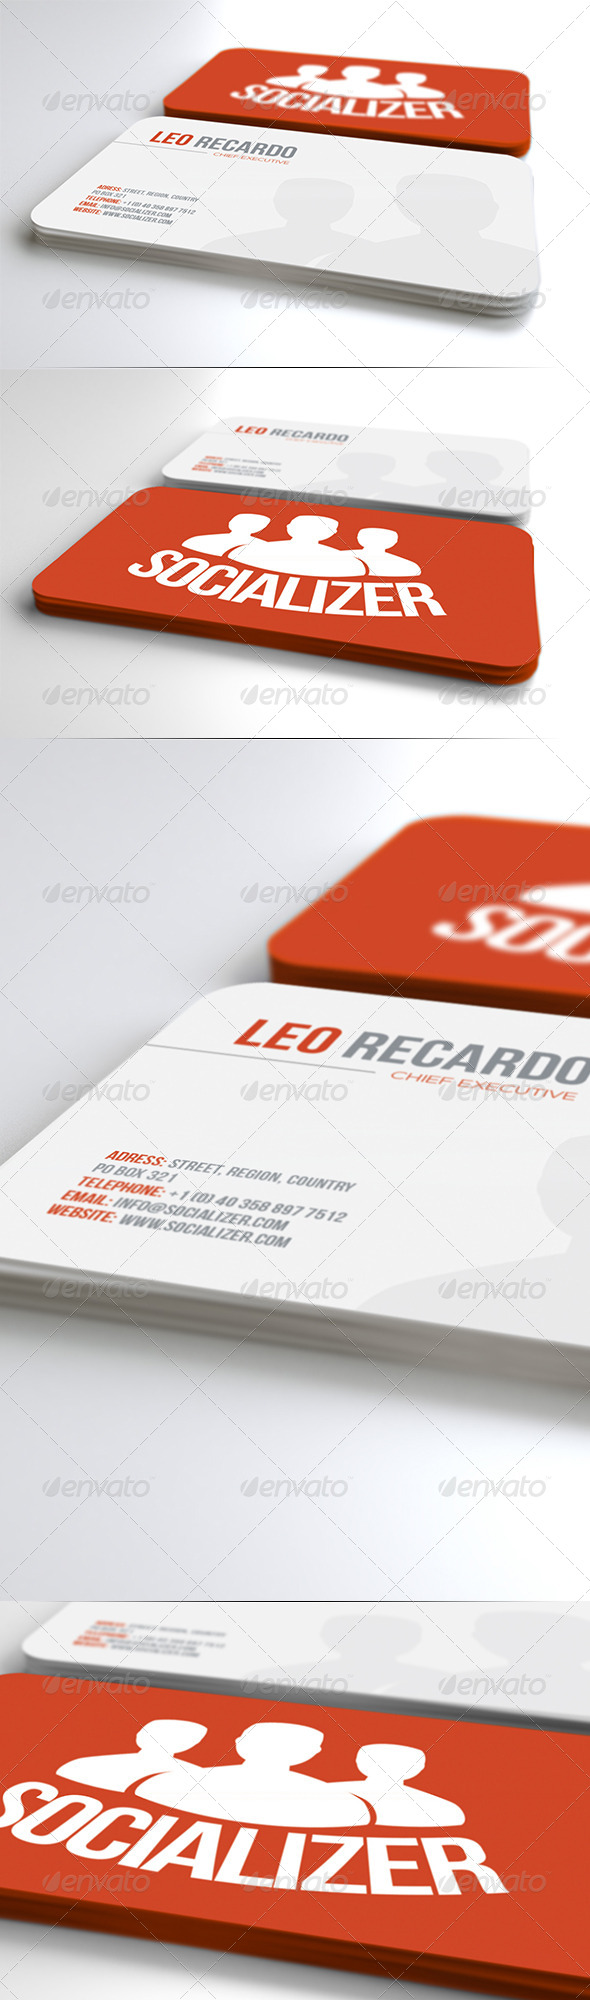 Social Business Card - Corporate Business Cards